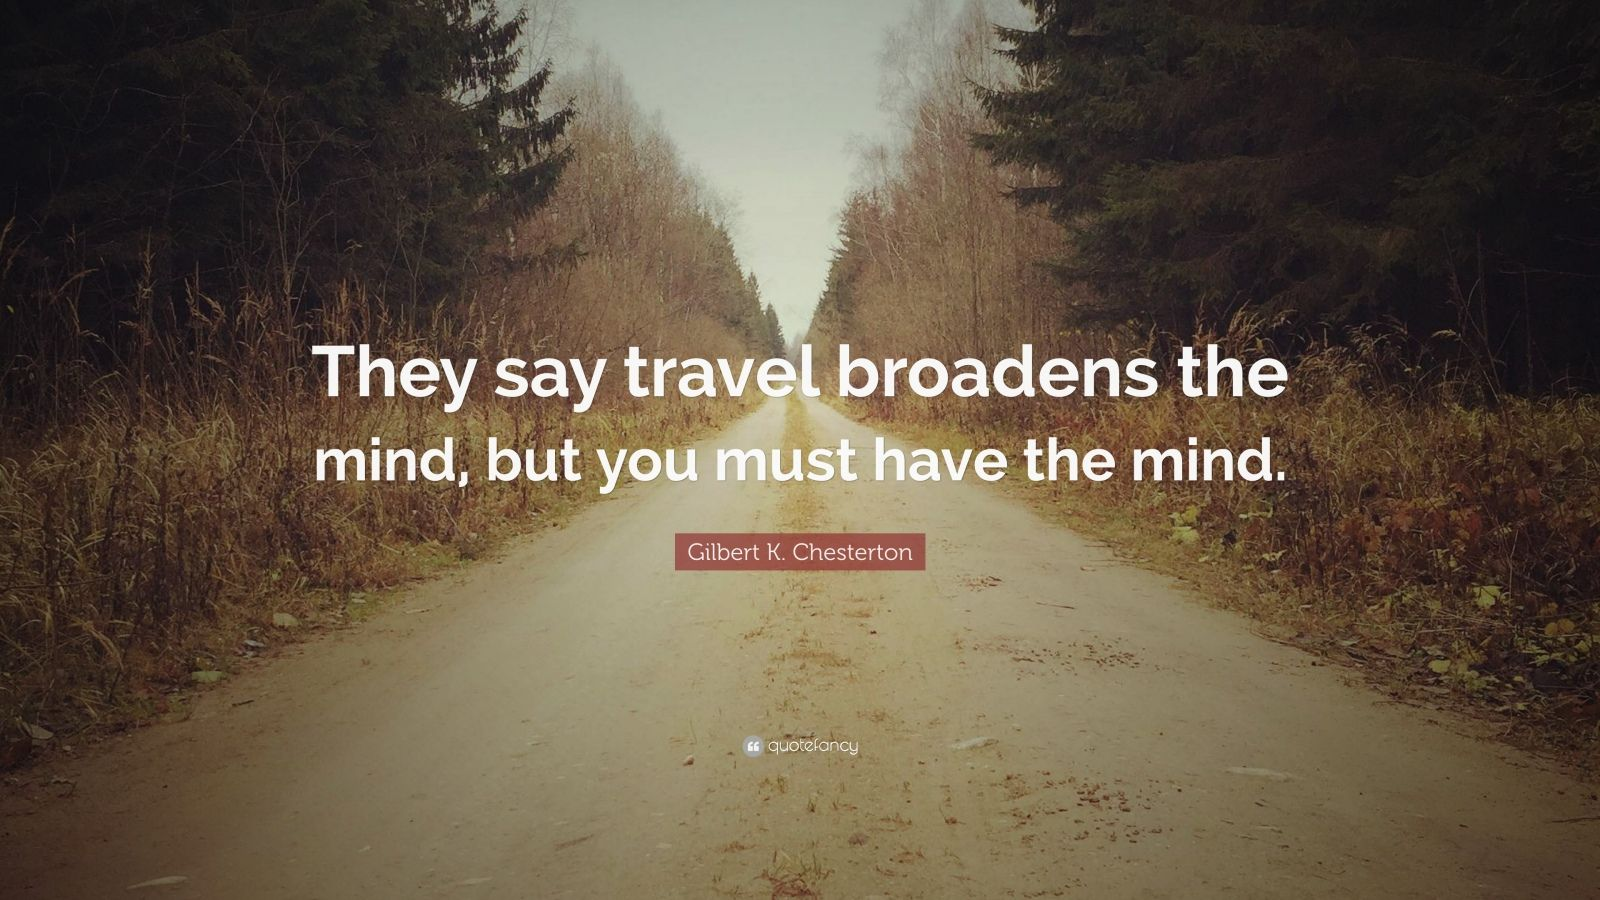 Essay about travel broadens the mind